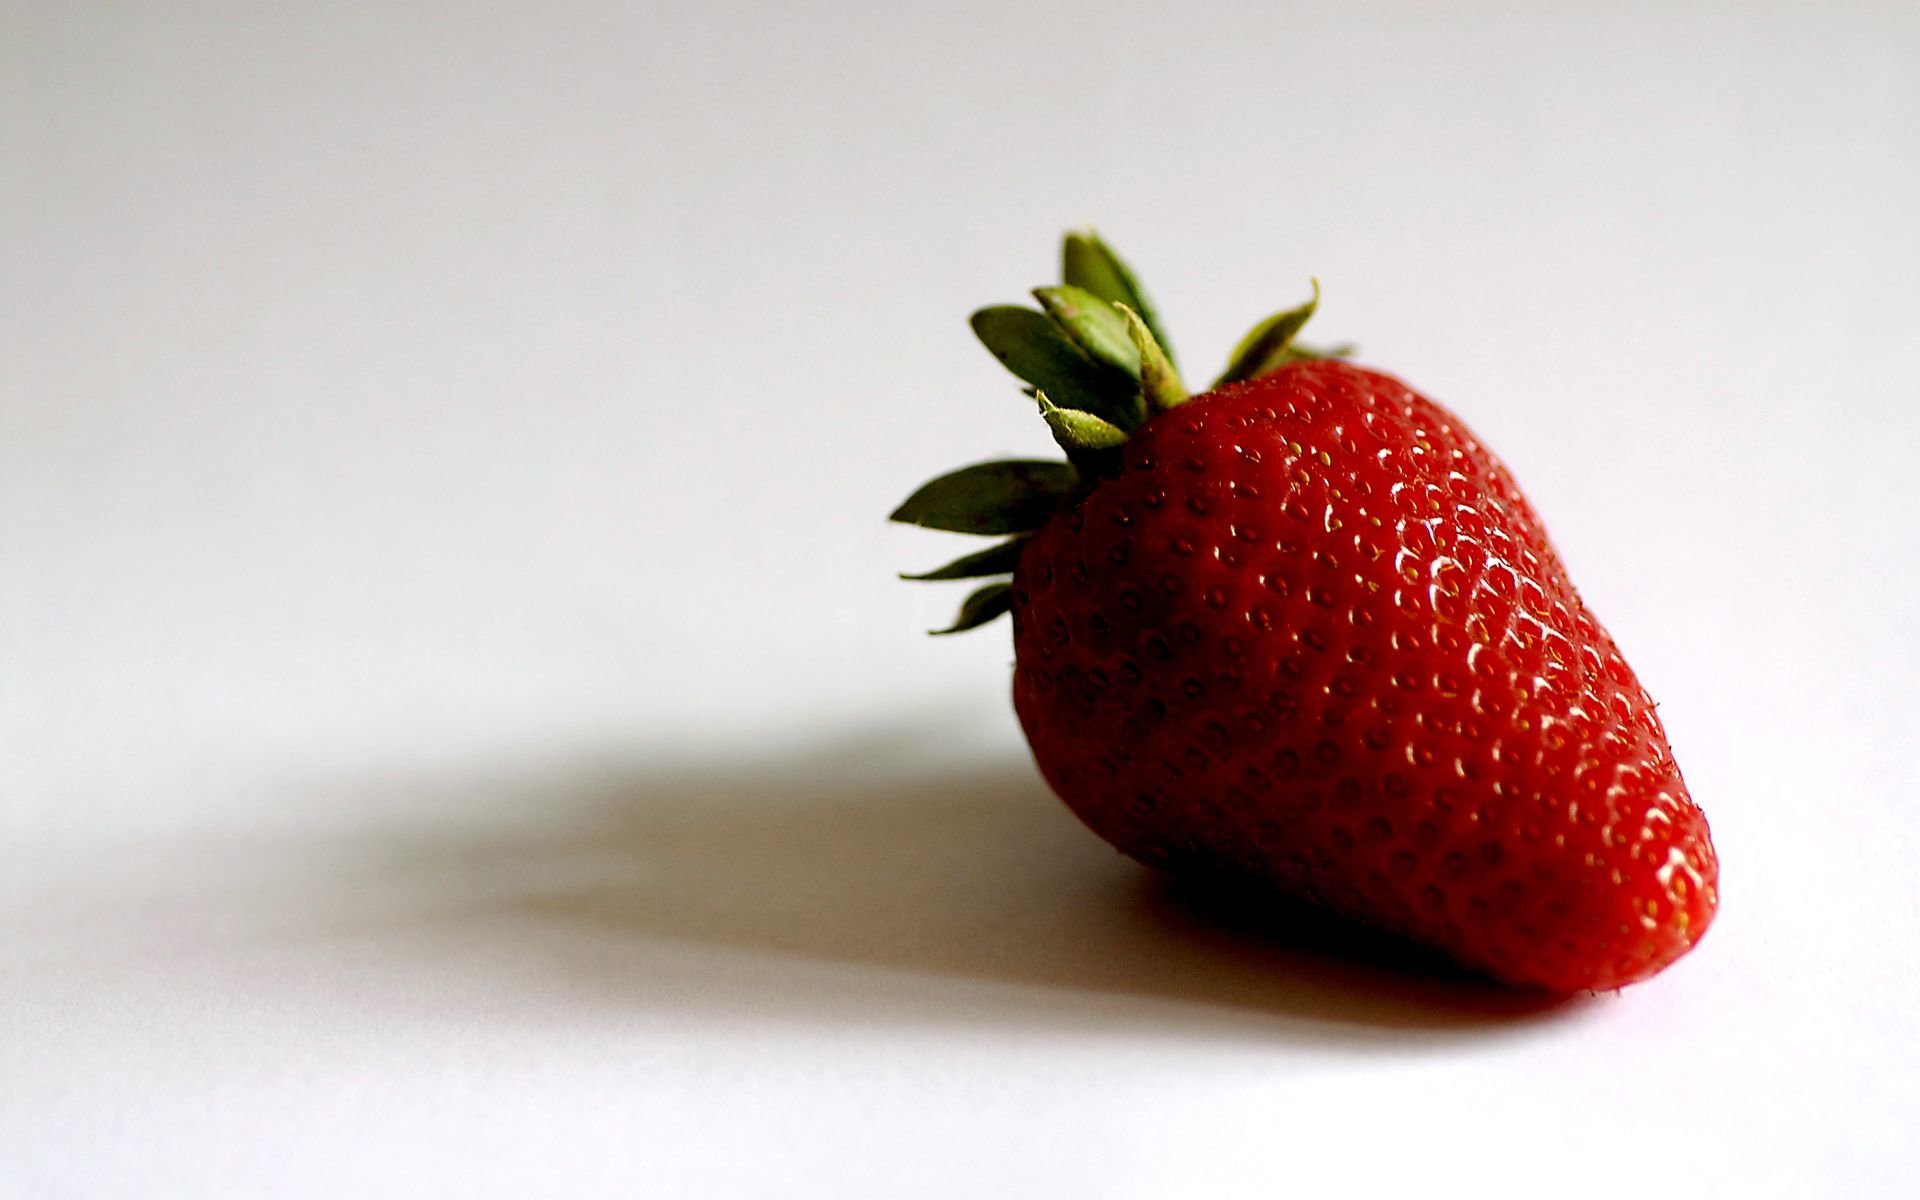 Free Strawberry high quality wallpaper ID:90930 for hd 1920x1200 desktop